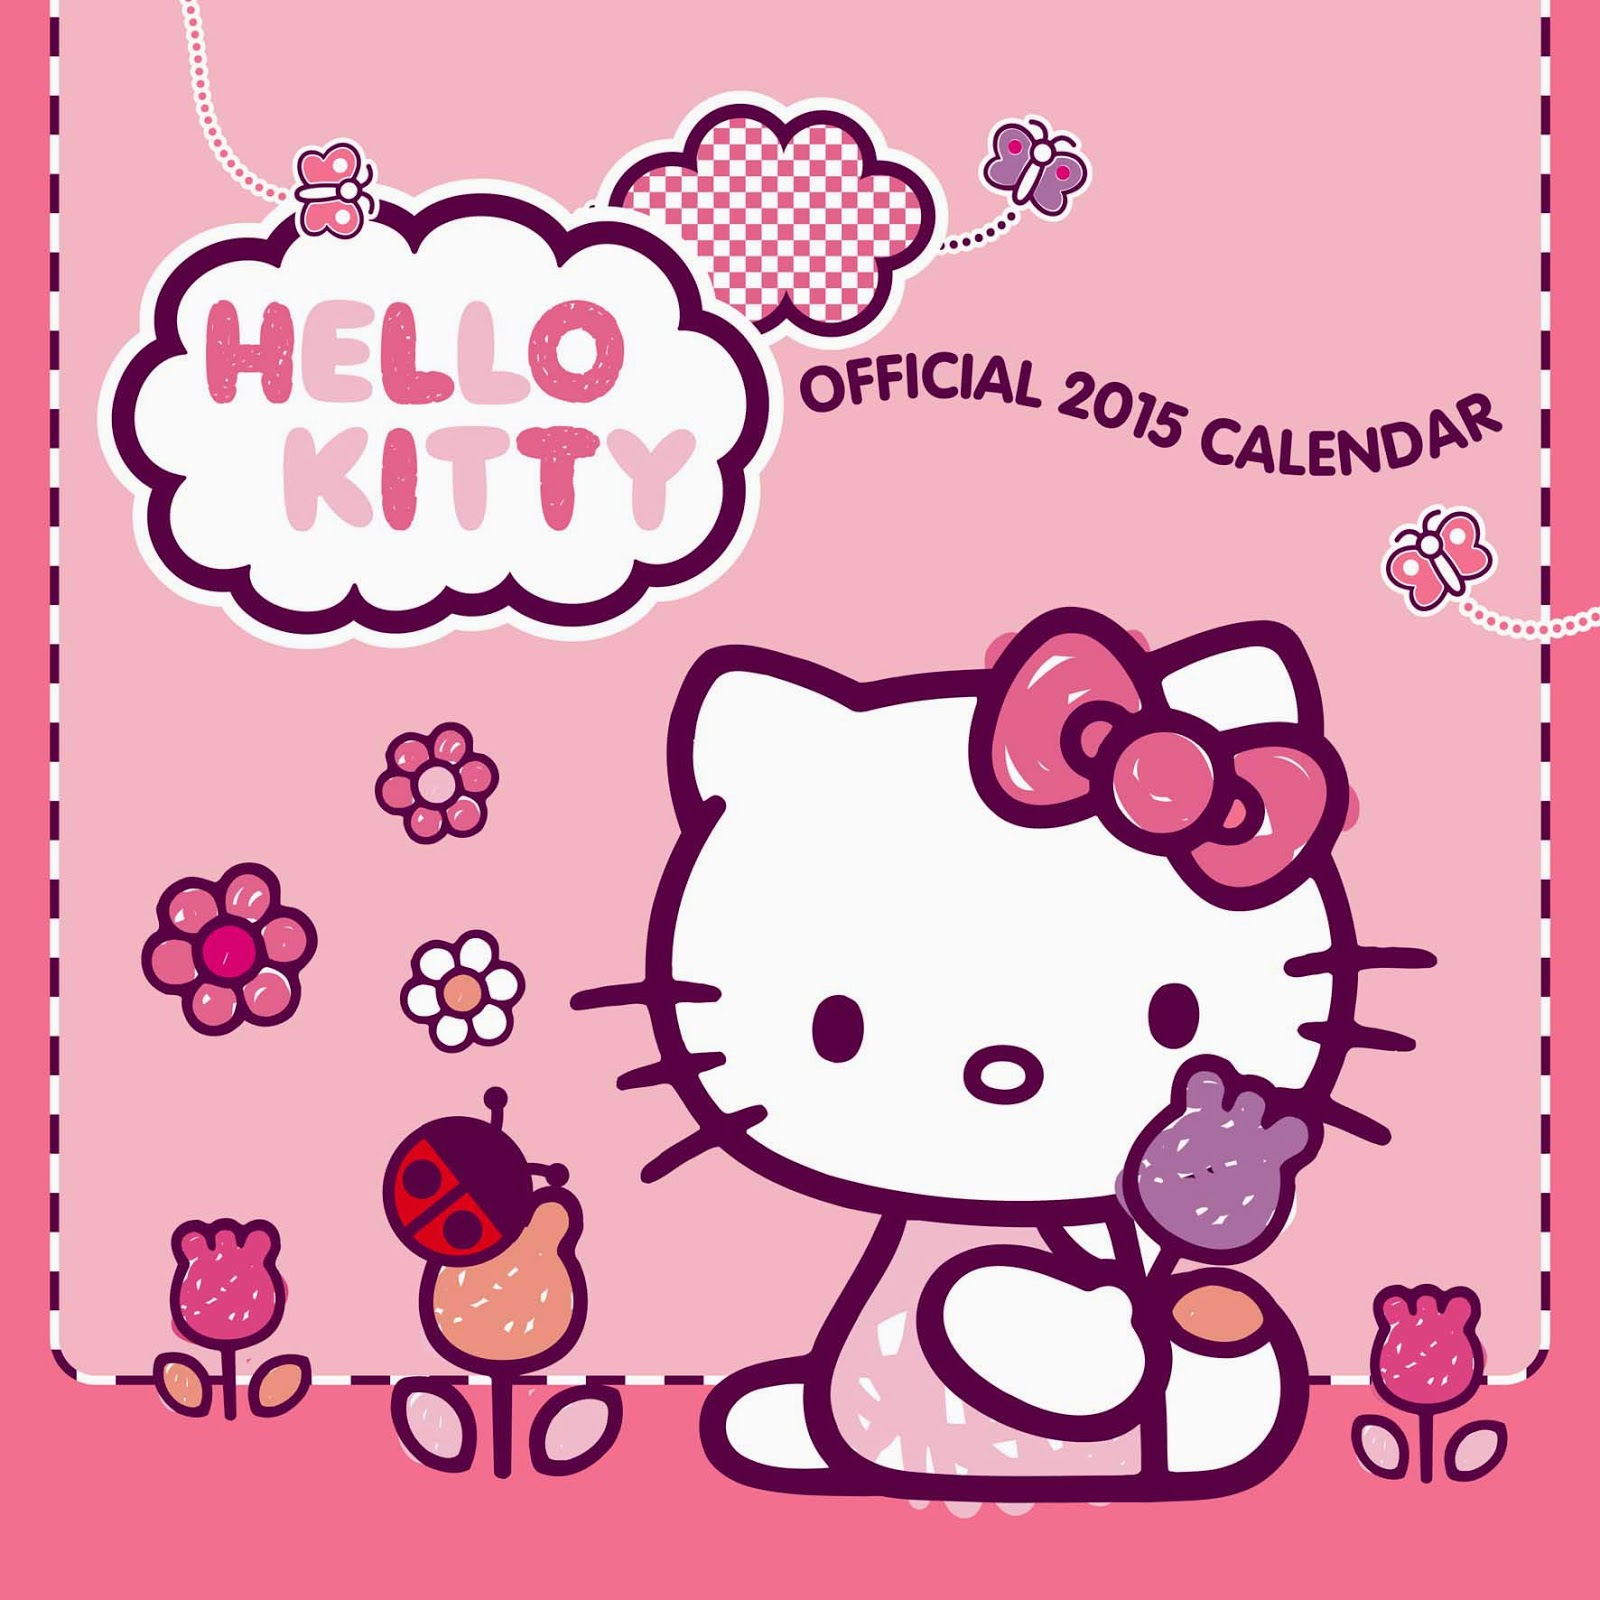 Gambar Wallpaper Hello Kitty